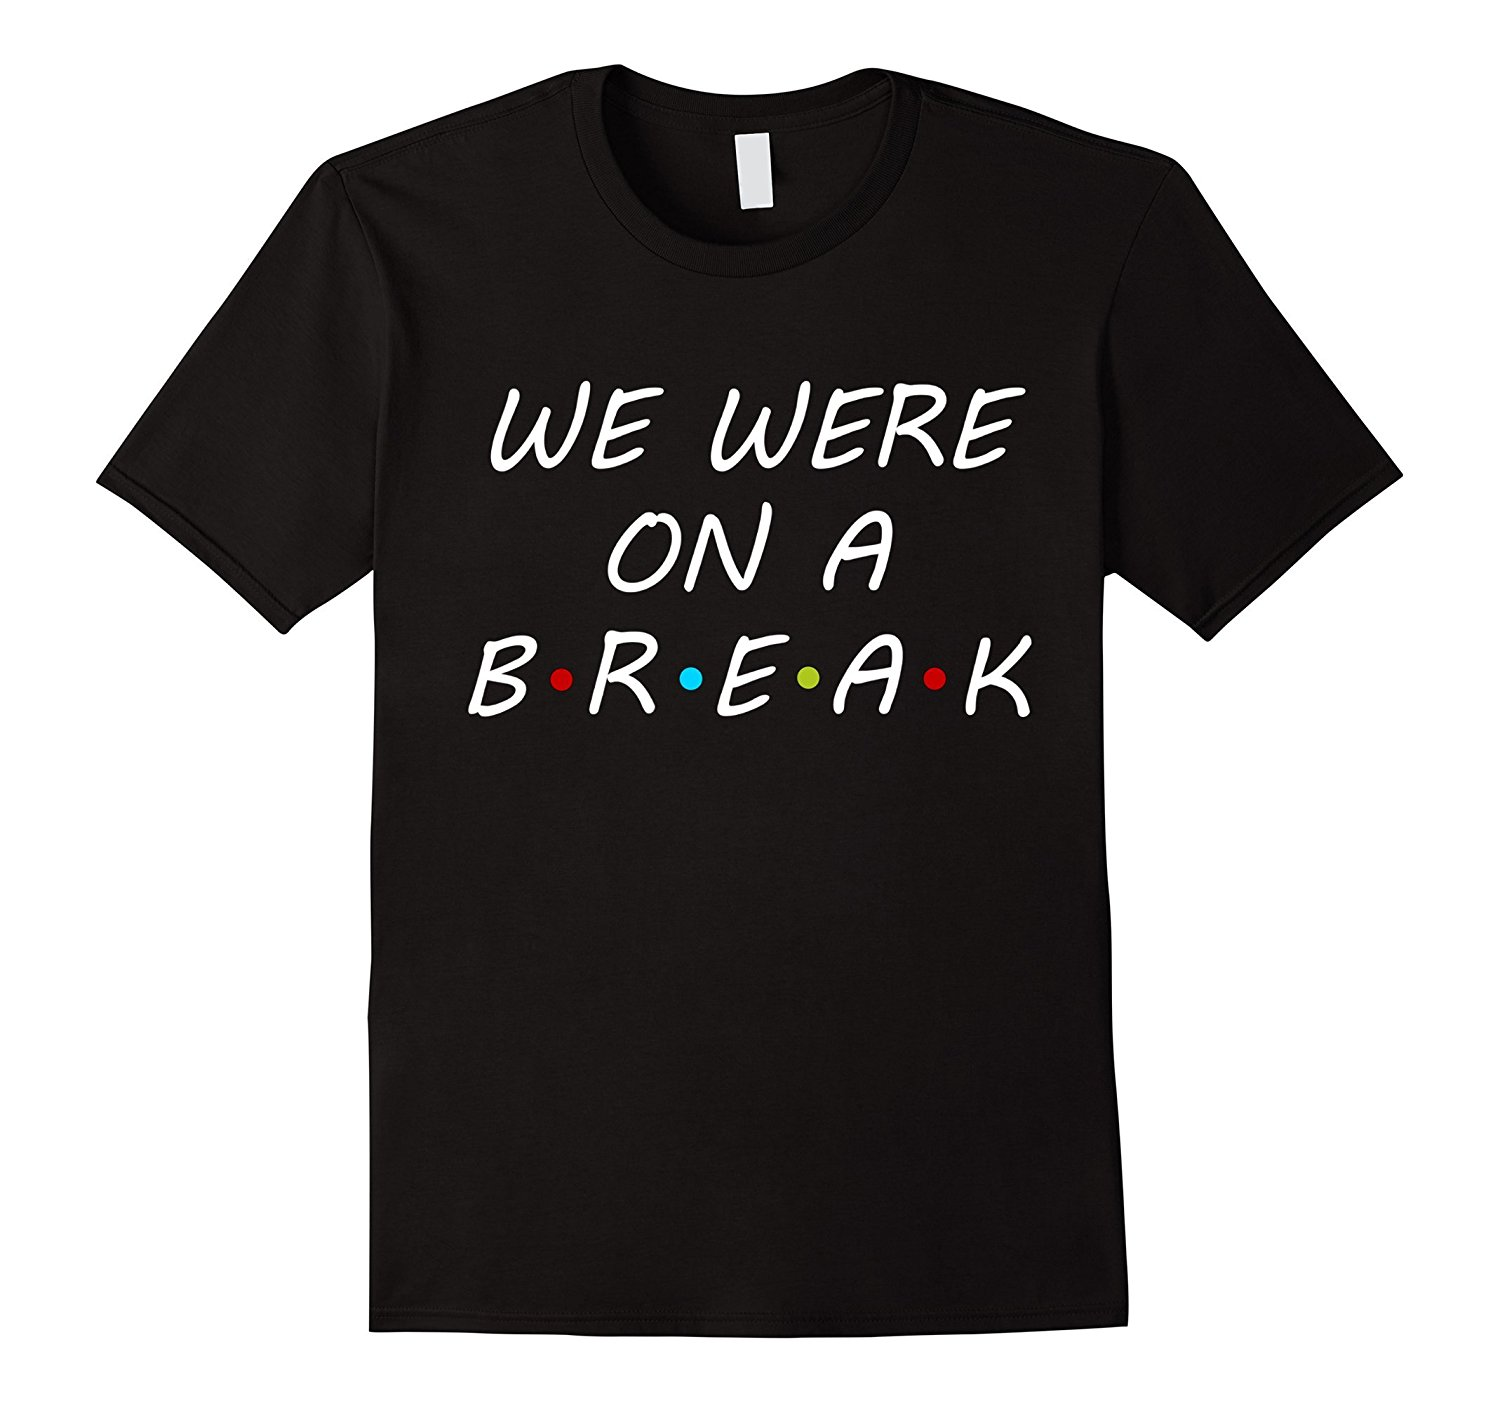 We Were on A Break Shirt - Funny Work Employee Tee Summer T-Shirt Brand Fitness Body Building T Shirt High Quality Top Tee